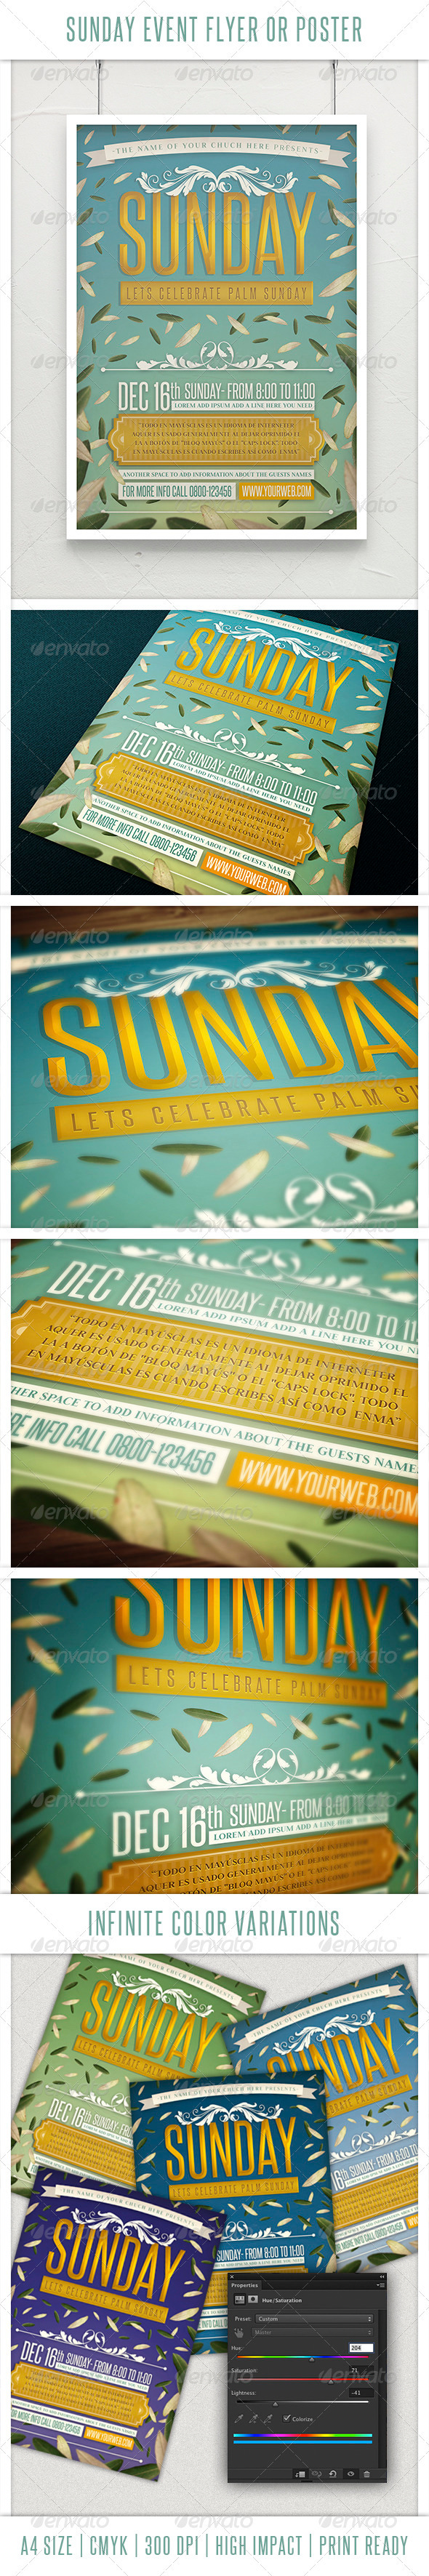 Sunday Event Flyer or Poster - Church Flyers